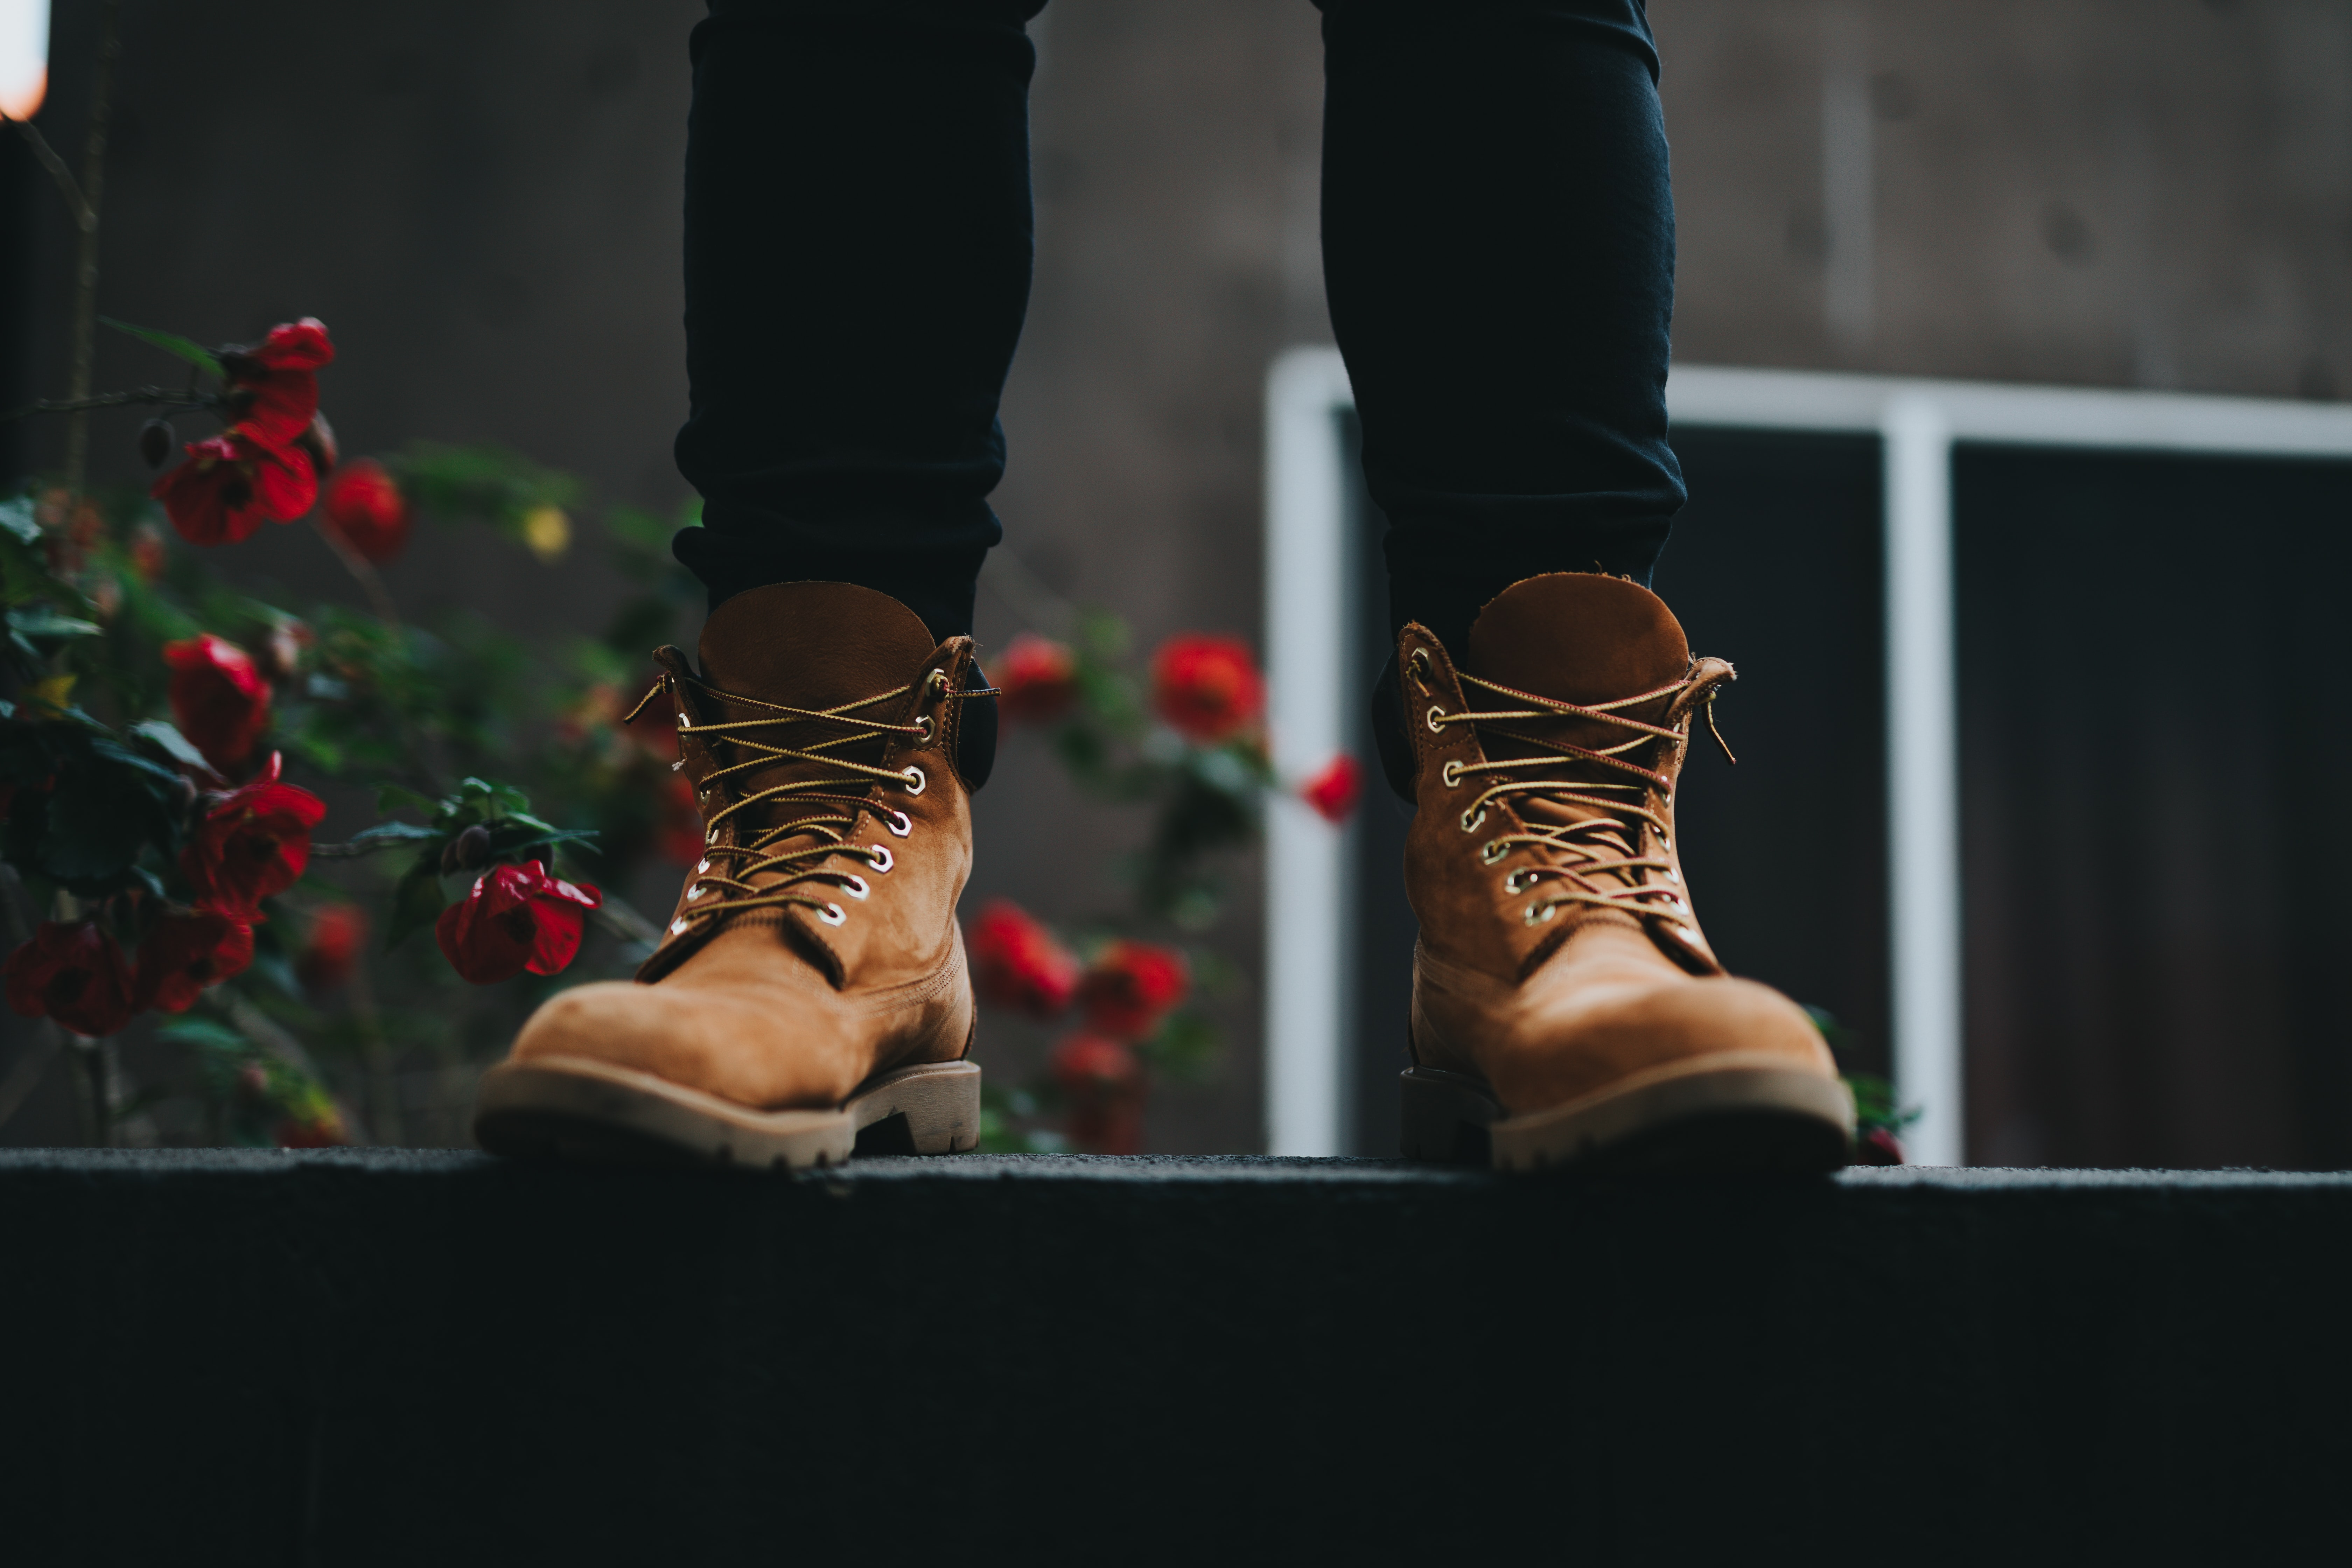 person wearing brown boots standing near red flowers